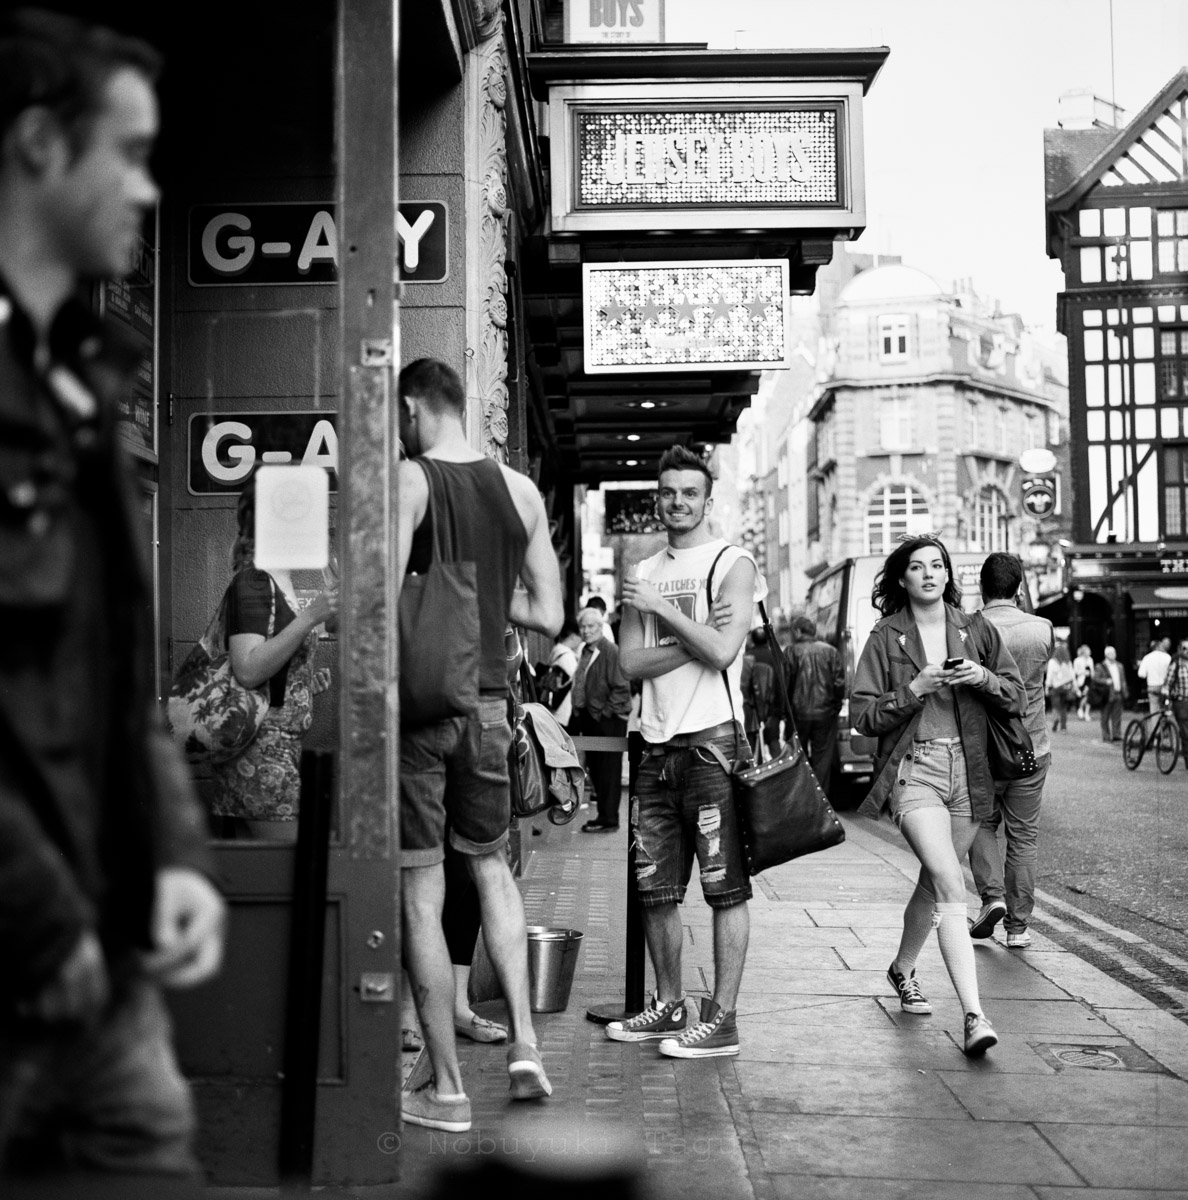 Street Photography London 120 Film  - G-A-Y Bar - Old Compton St, London